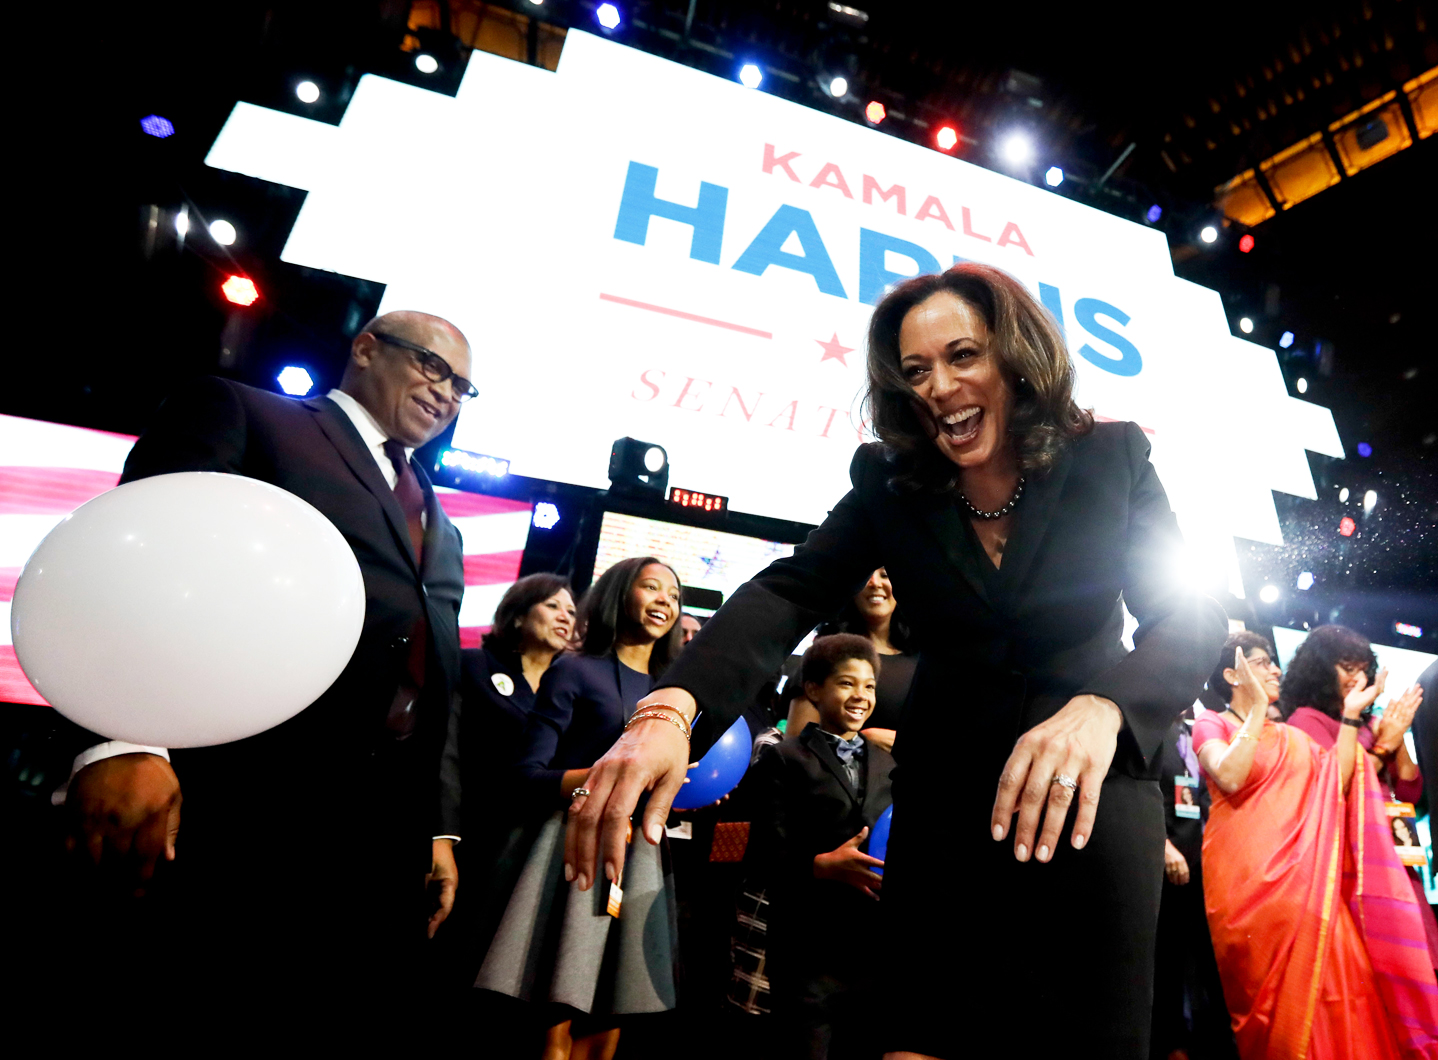 Sen. Kamala Harris greets supporters at an election night victory rally in Los Angeles, Nov. 9, 2016.